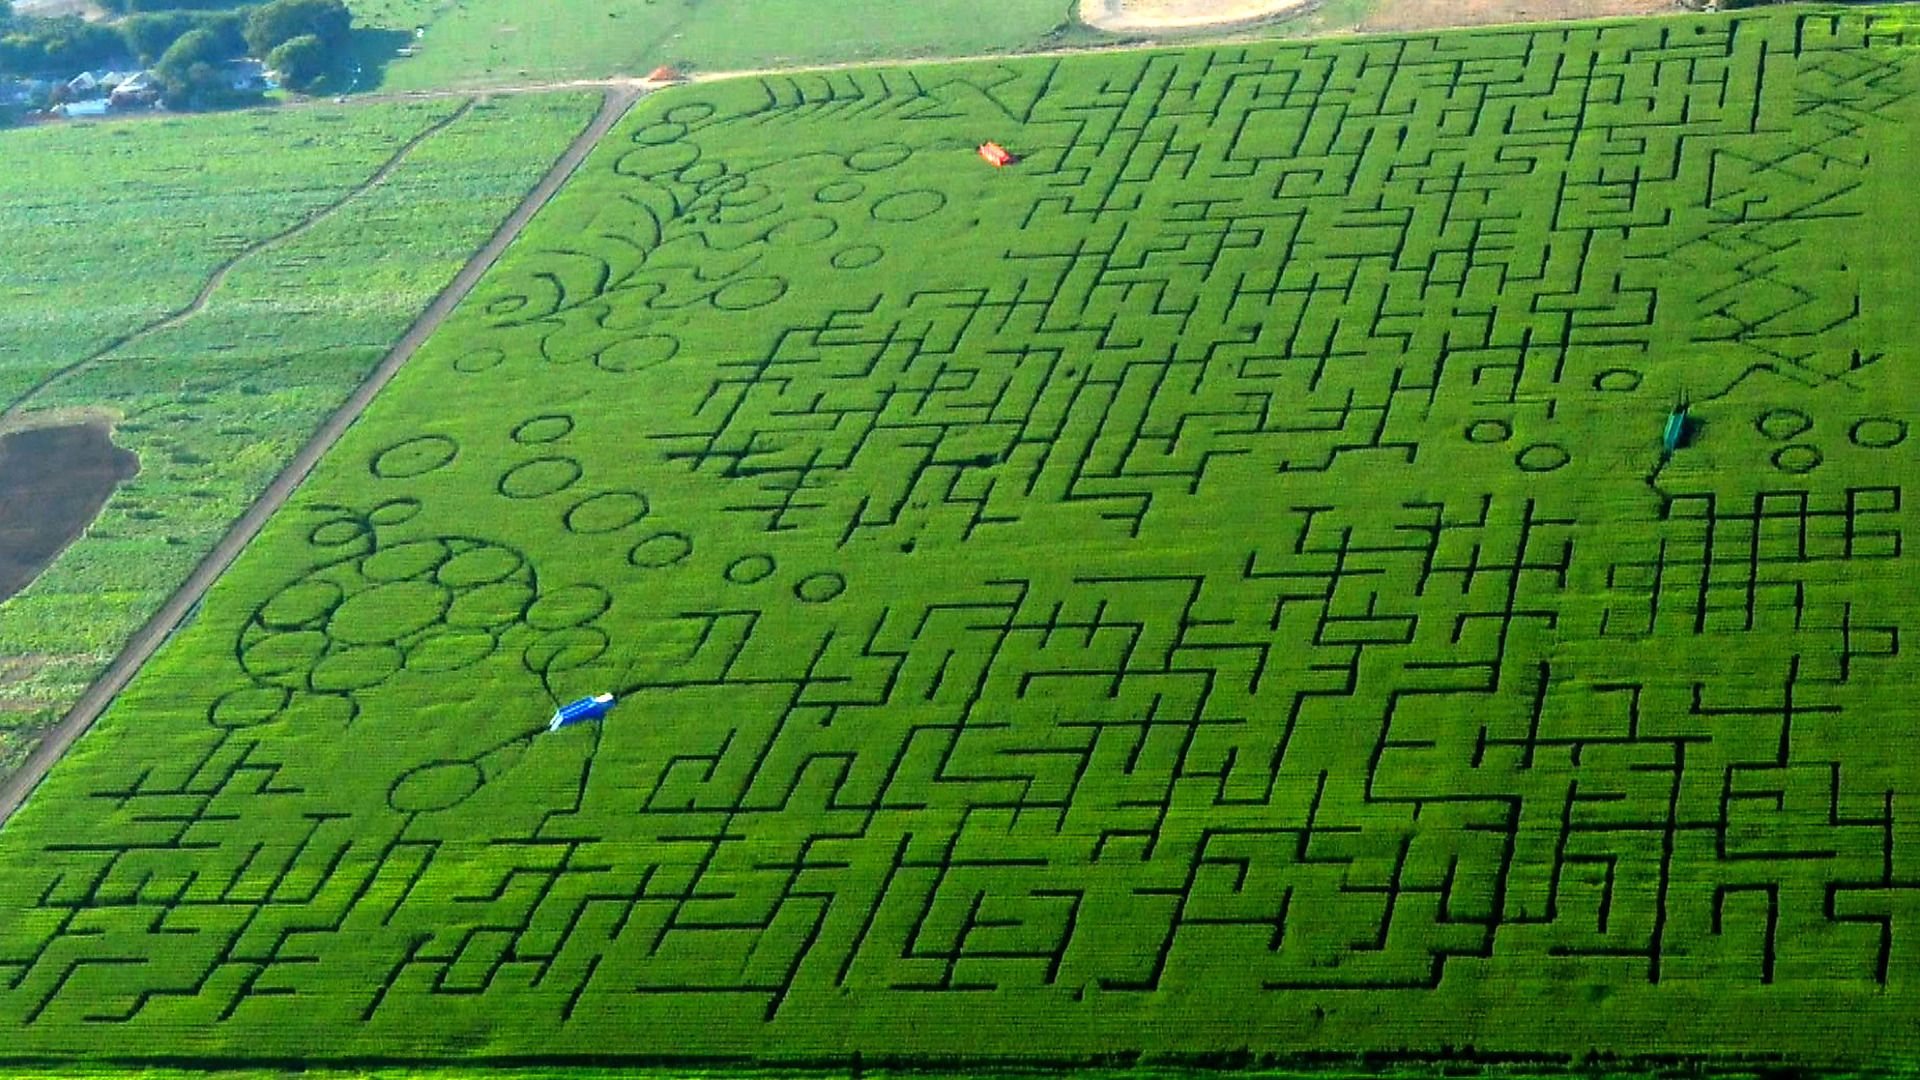 The 60-acre Cool Patch Pumpkins corn maze in Dixon, CA, is so big that people routinely call 911 for help getting out, even though they have a map that details every twist and turn.